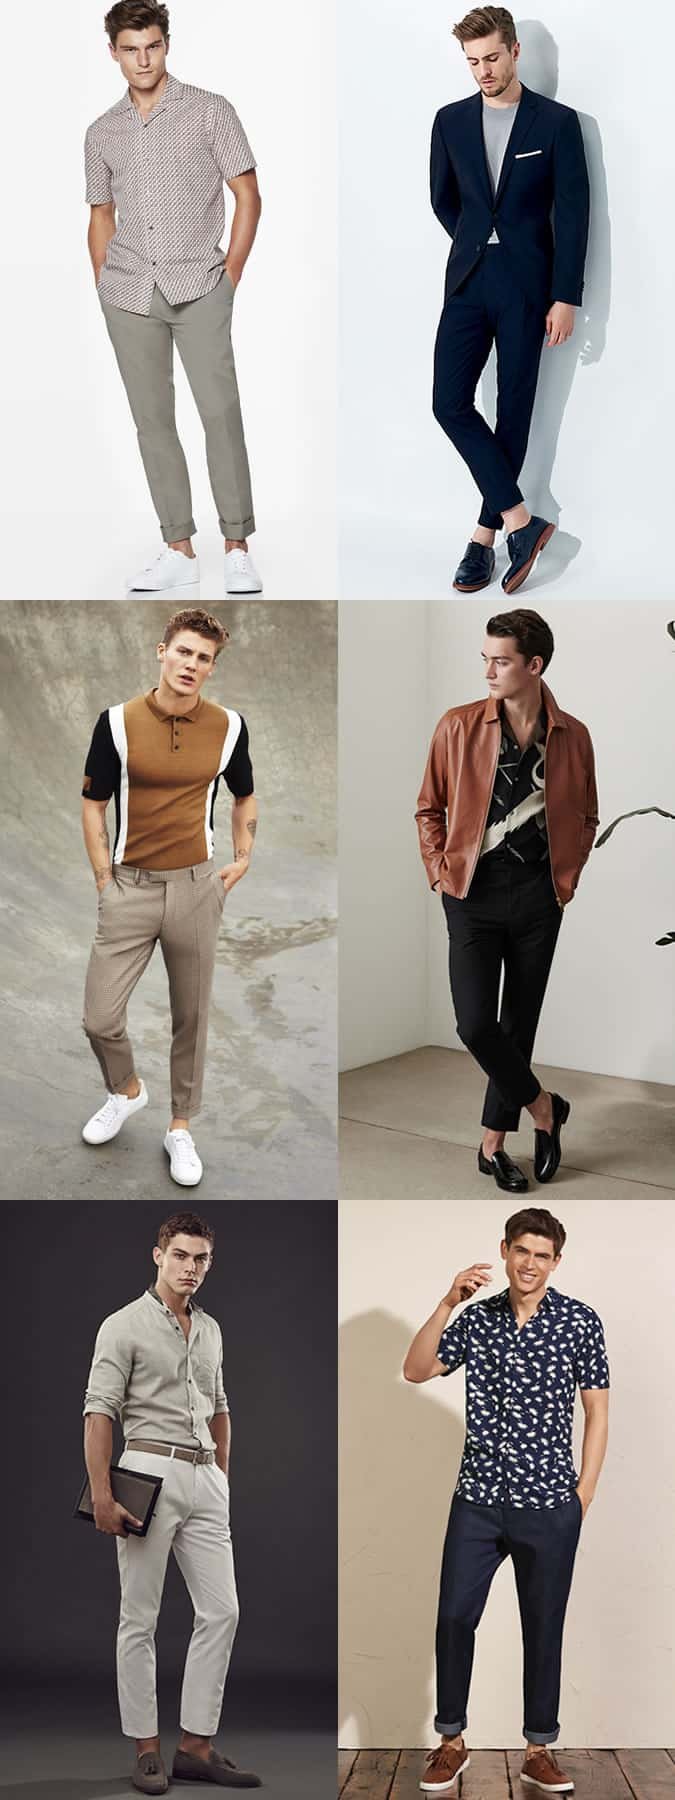 Men's Sockless/Mankle Summer Outfit Inspiration Lookbook